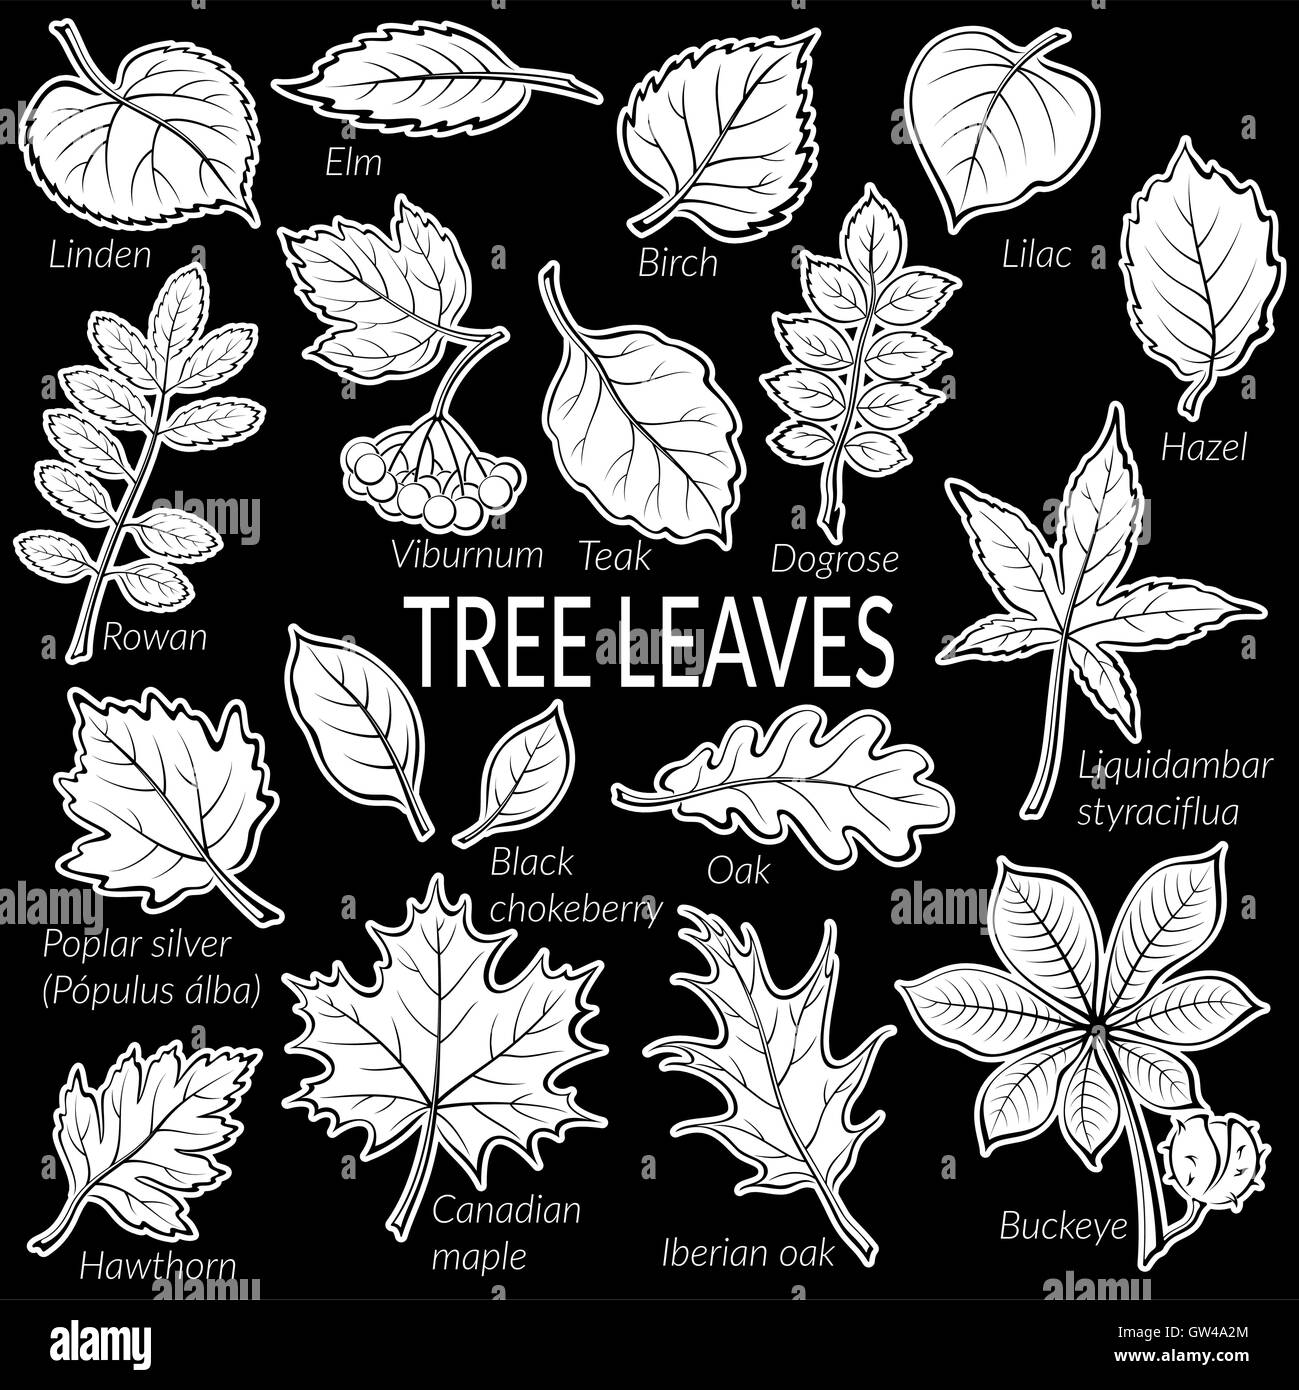 Leaves of Plants Pictogram Set - Stock Image